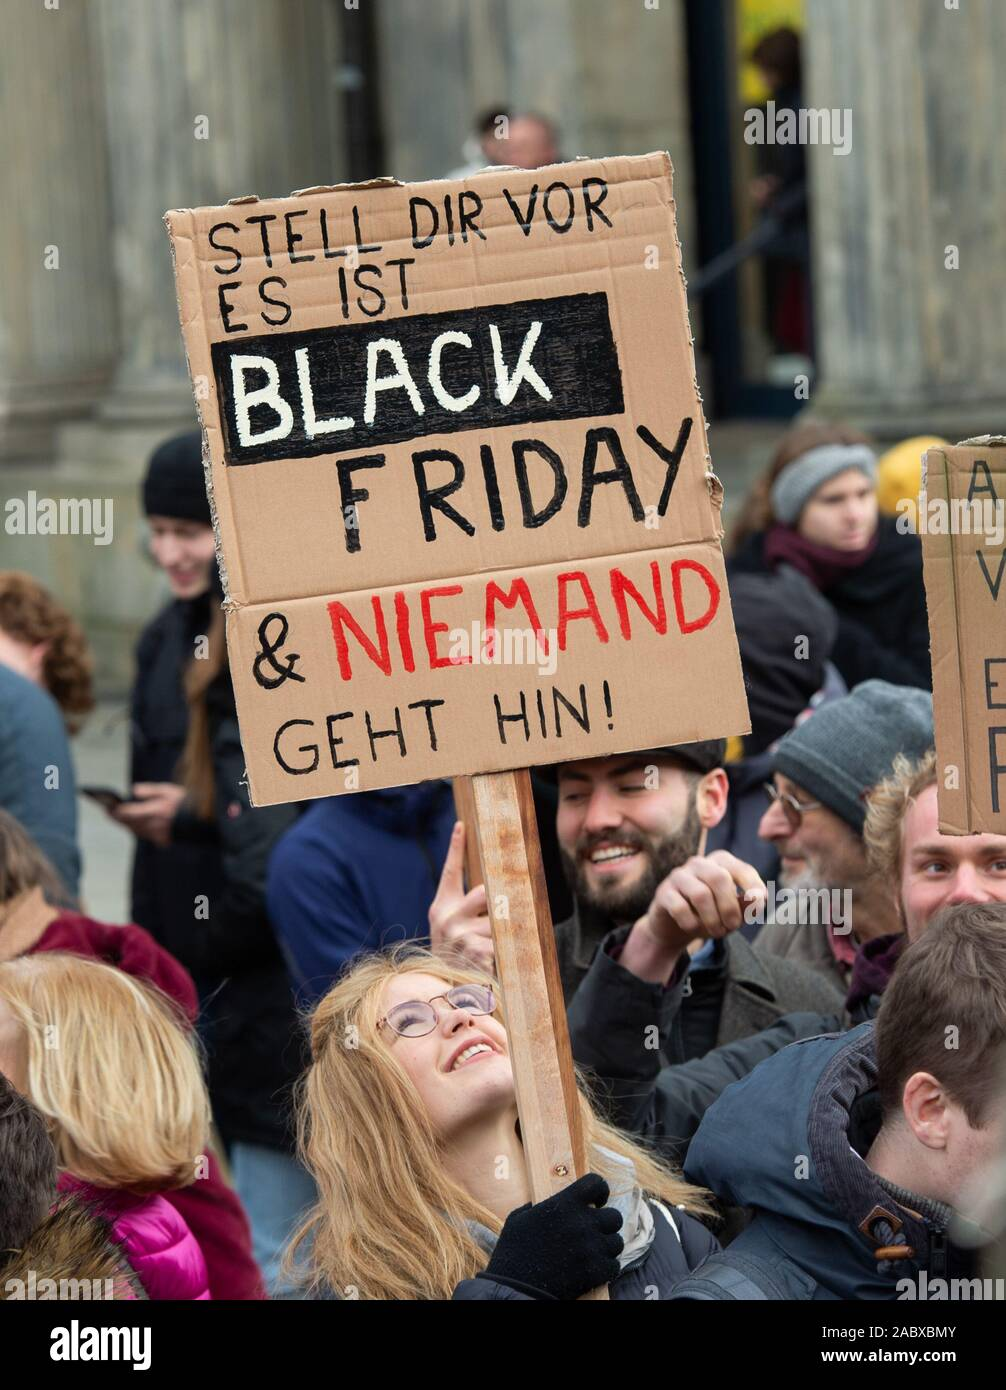 Hanover Germany 29th Nov 2019 A Demonstrator Holds A Sign With The Inscription Imagine It S Black